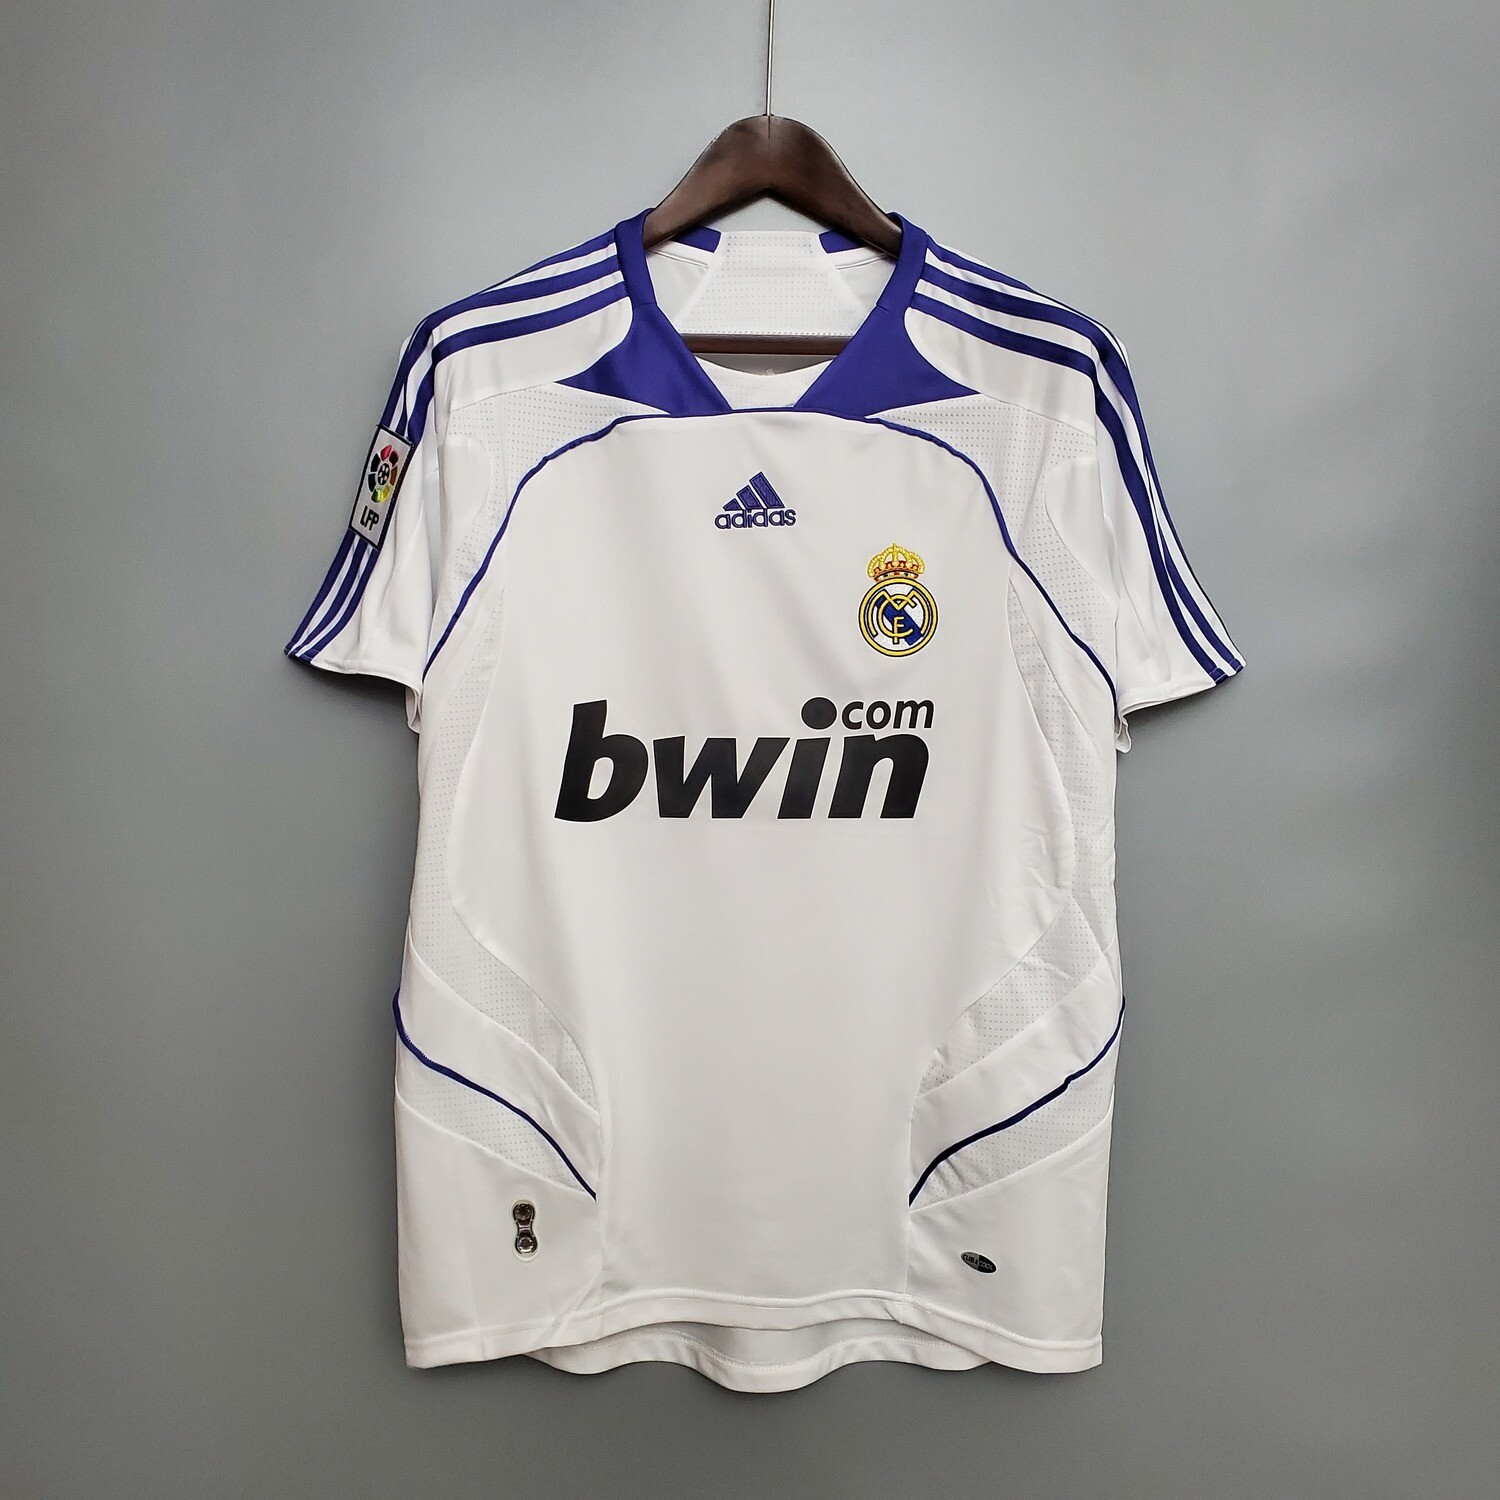 Real Madrid 2007-08 Retro Home Jersey [Pre-paid Only]